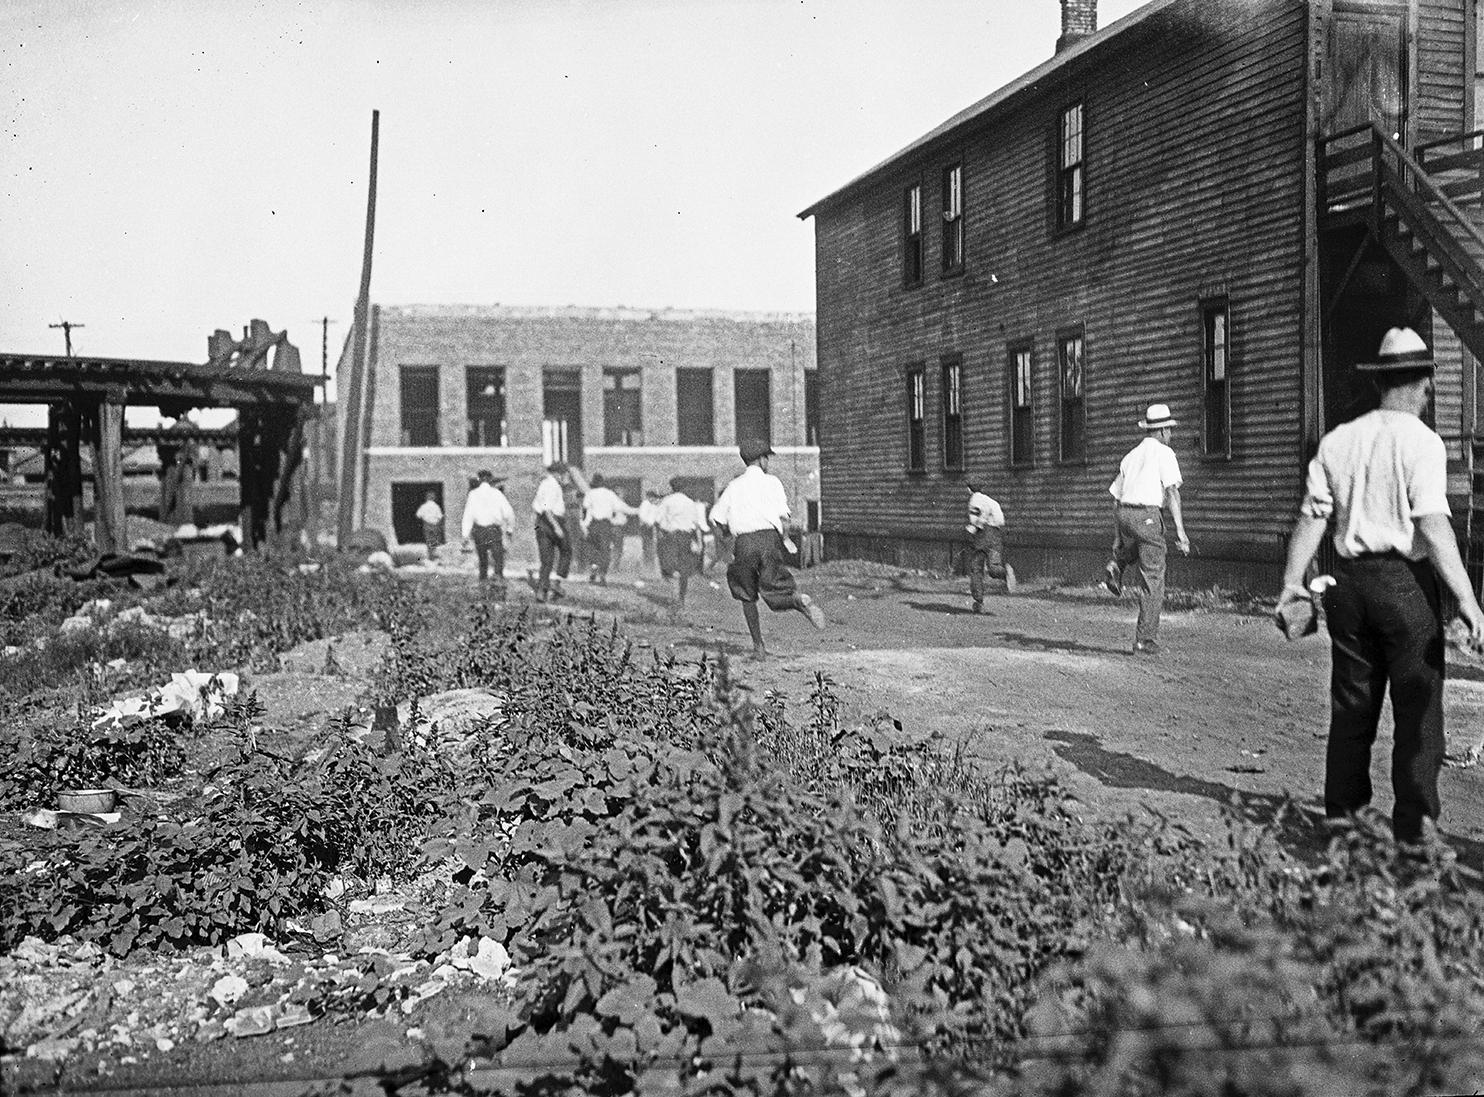 In this 1919 photo provided by the Chicago History Museum, a mob runs with bricks during the race riots in Chicago. (Chicago History Museum / The Jun Fujita negatives collection via AP)